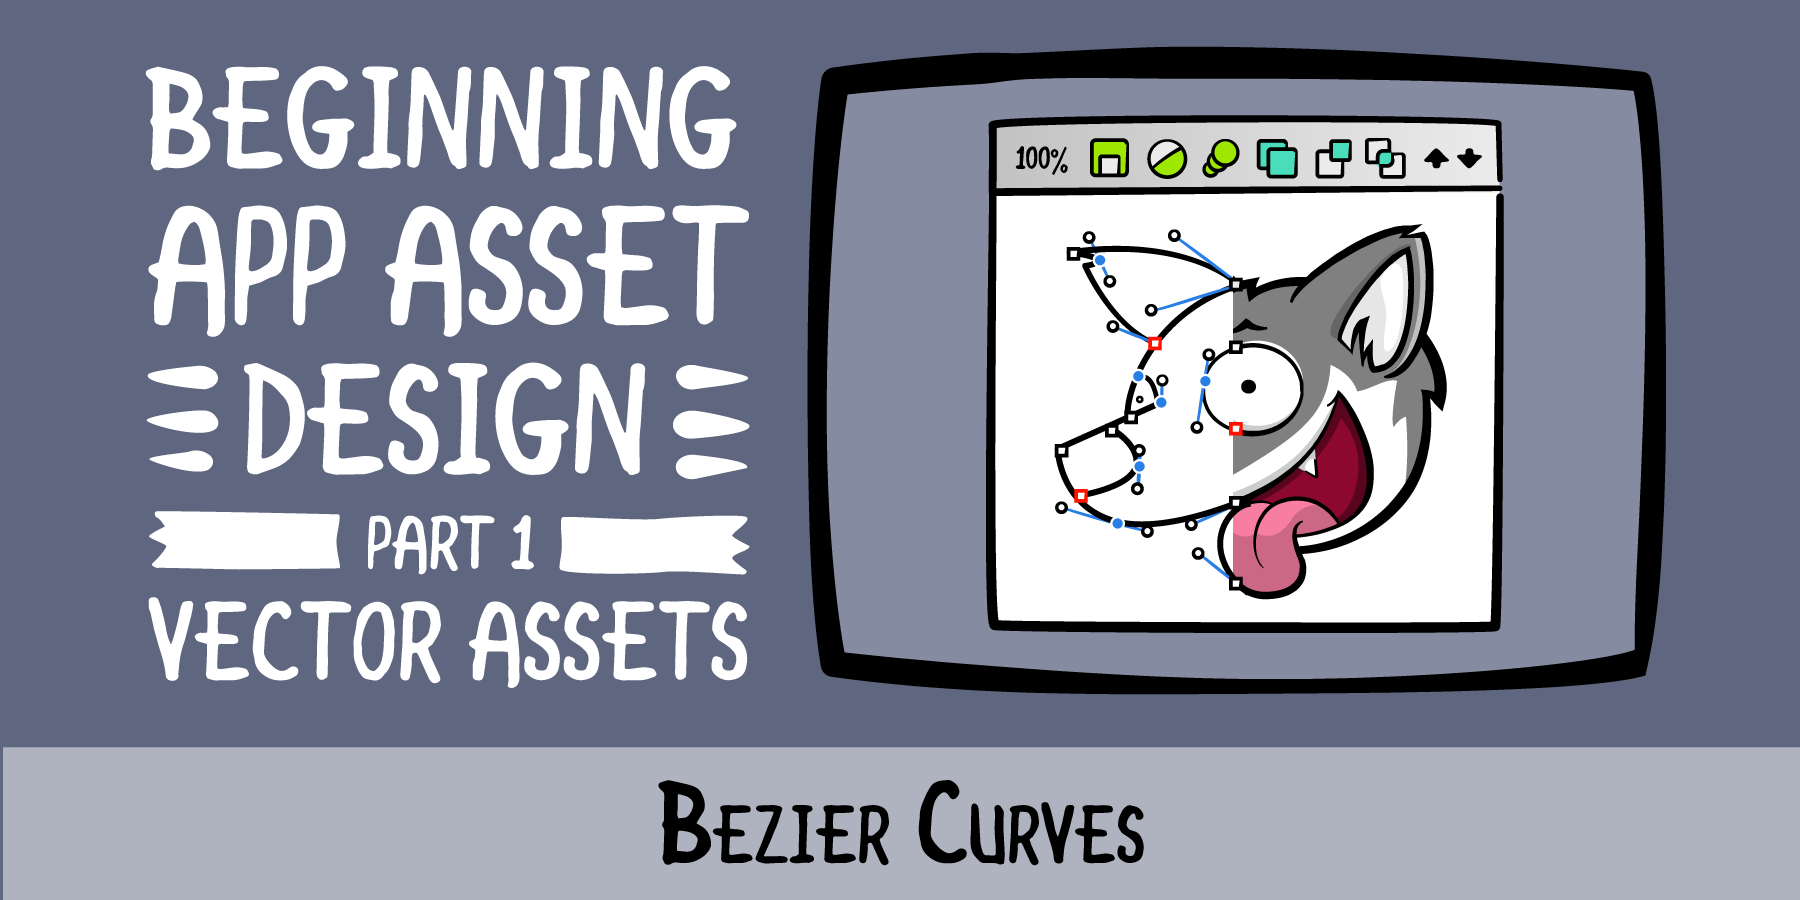 Beginning App Asset Design · Bezier Curves